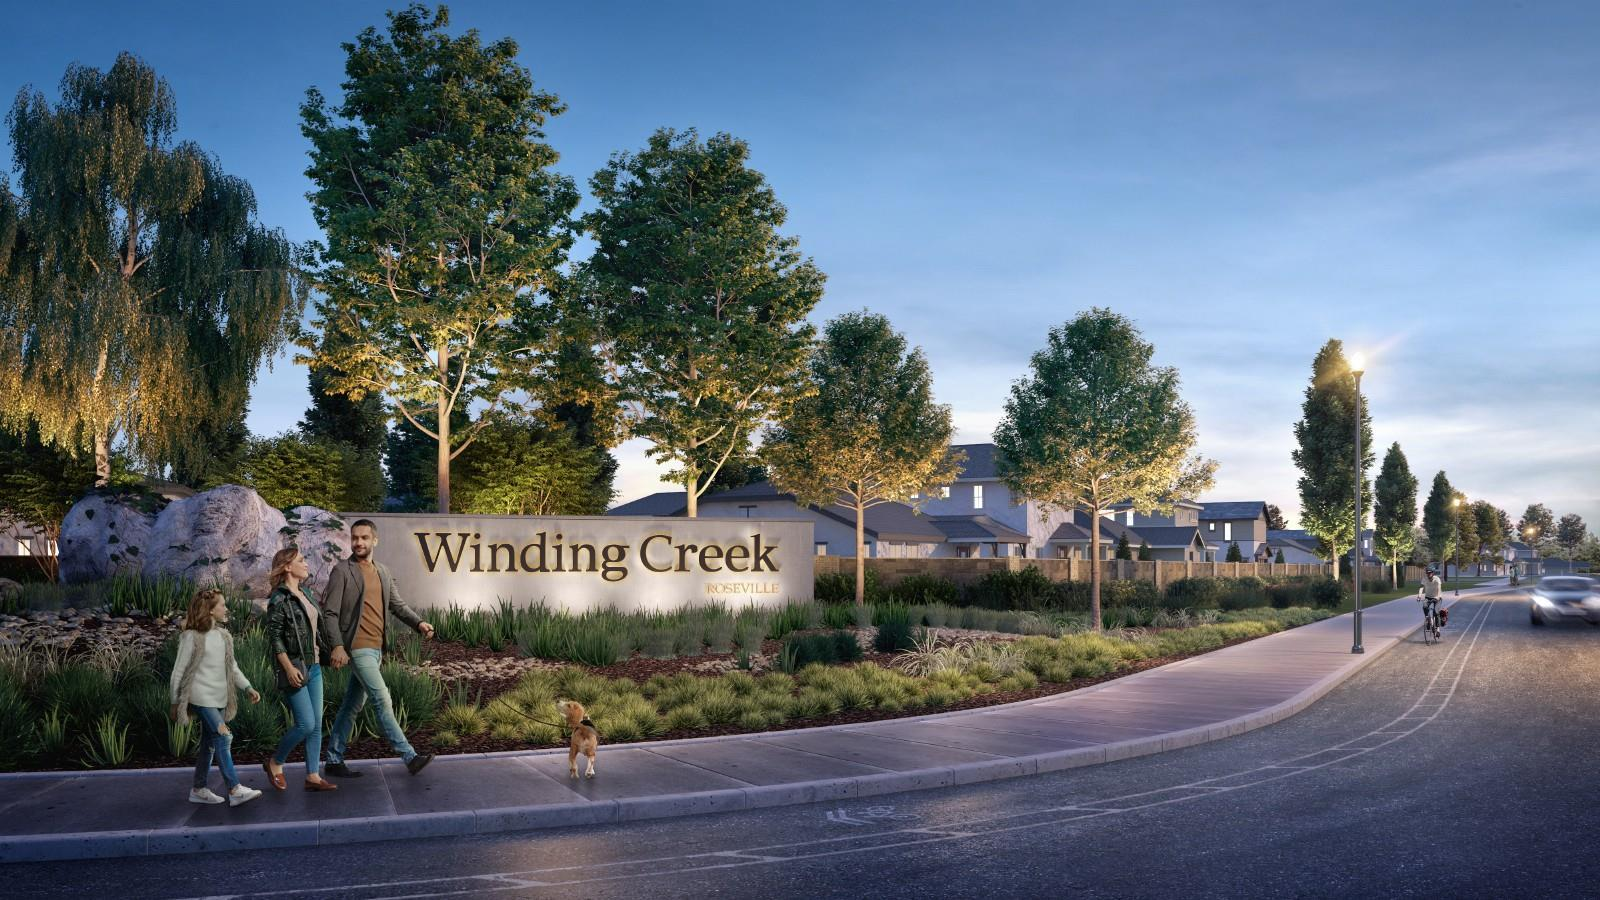 Winding Creek,95661